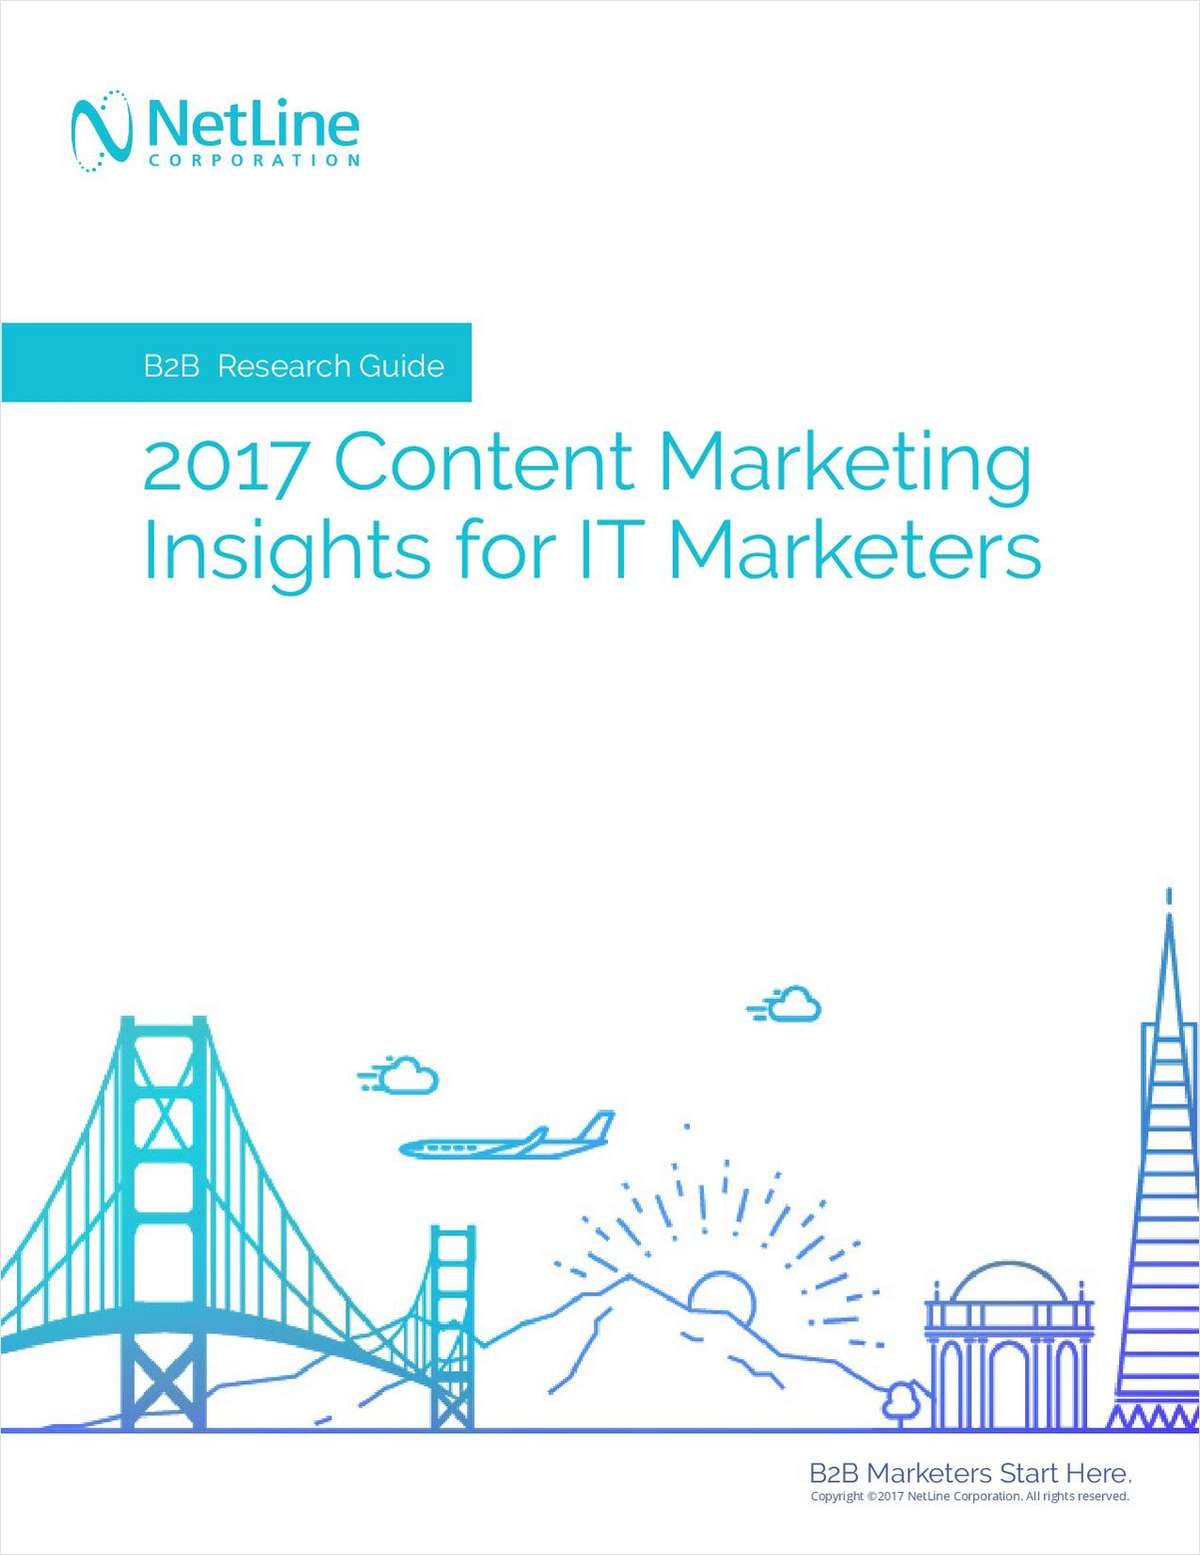 2017 Content Marketing Insights for IT Marketers